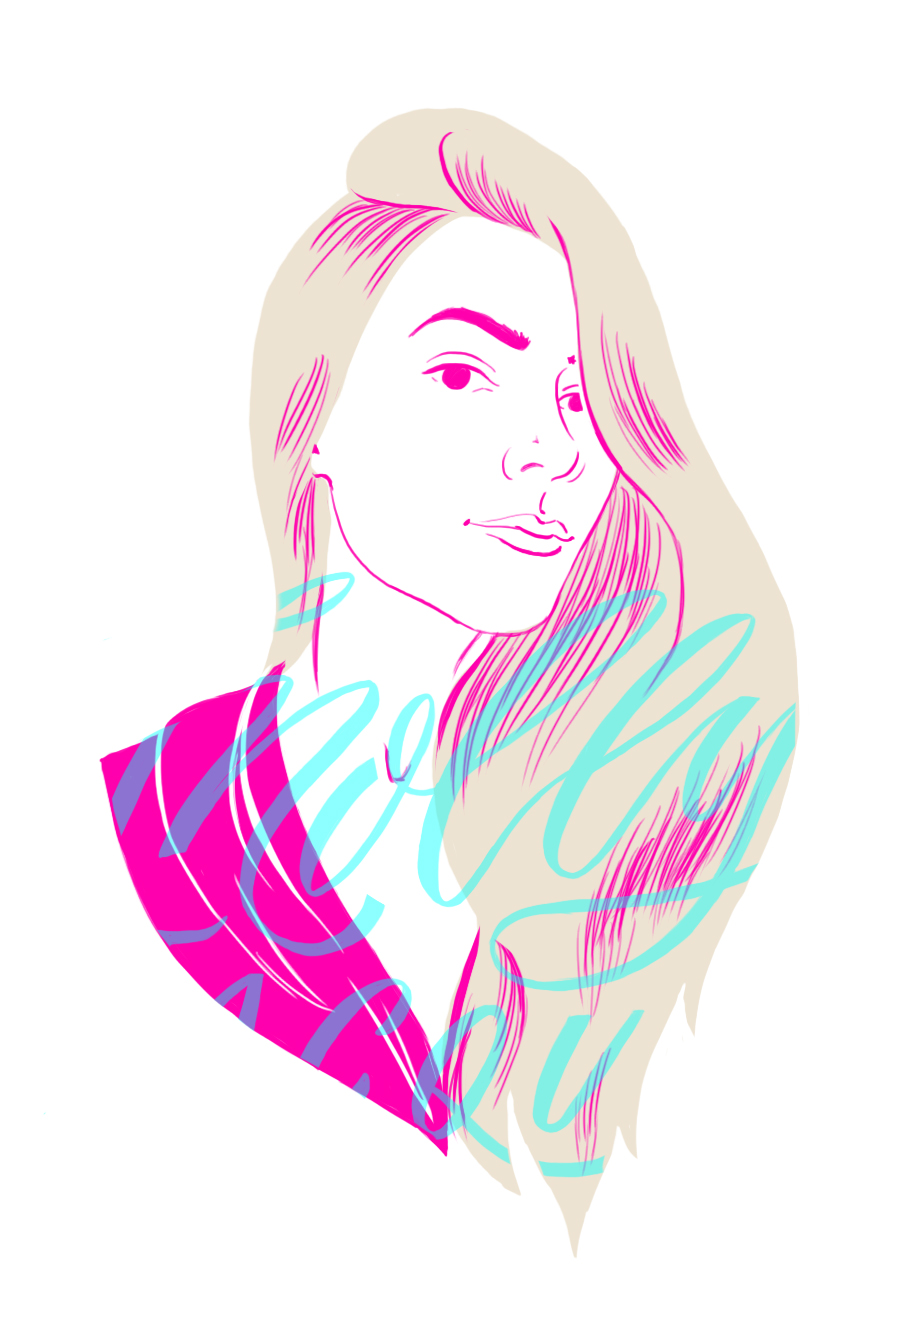 @mollyjacques portrait #illustration